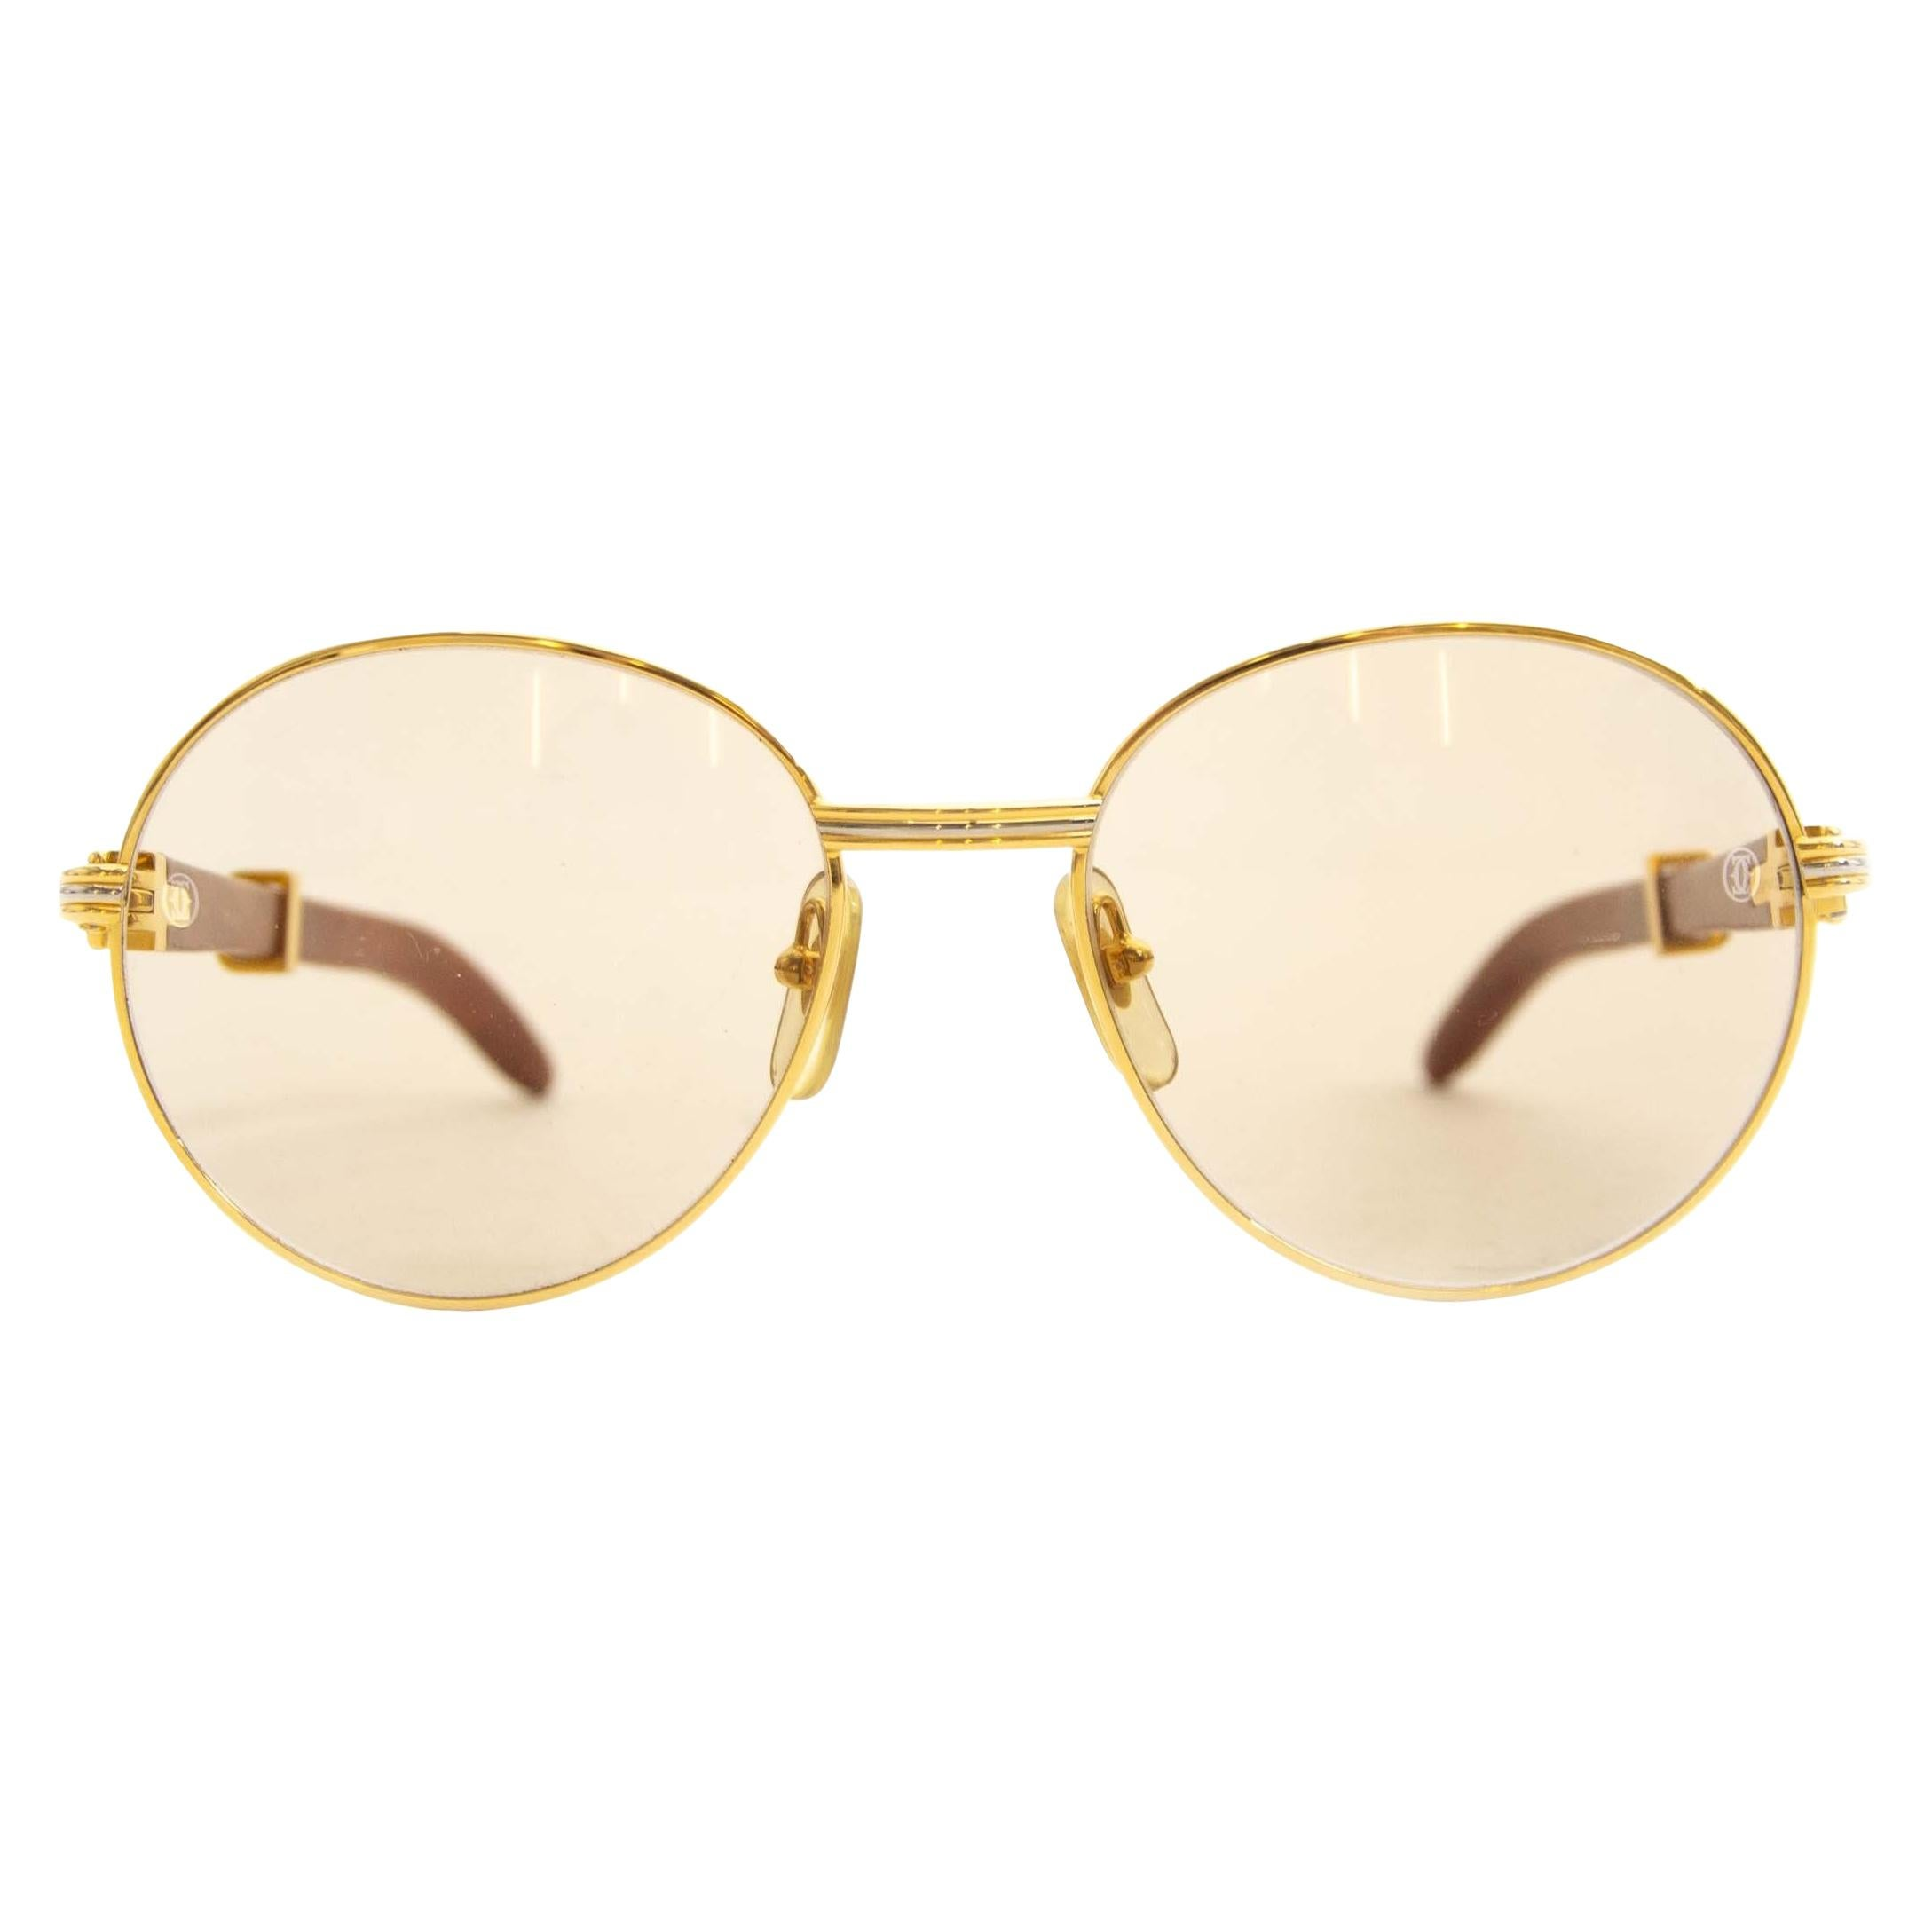 ed6b7347808 Vintage Cartier Sunglasses - 159 For Sale at 1stdibs